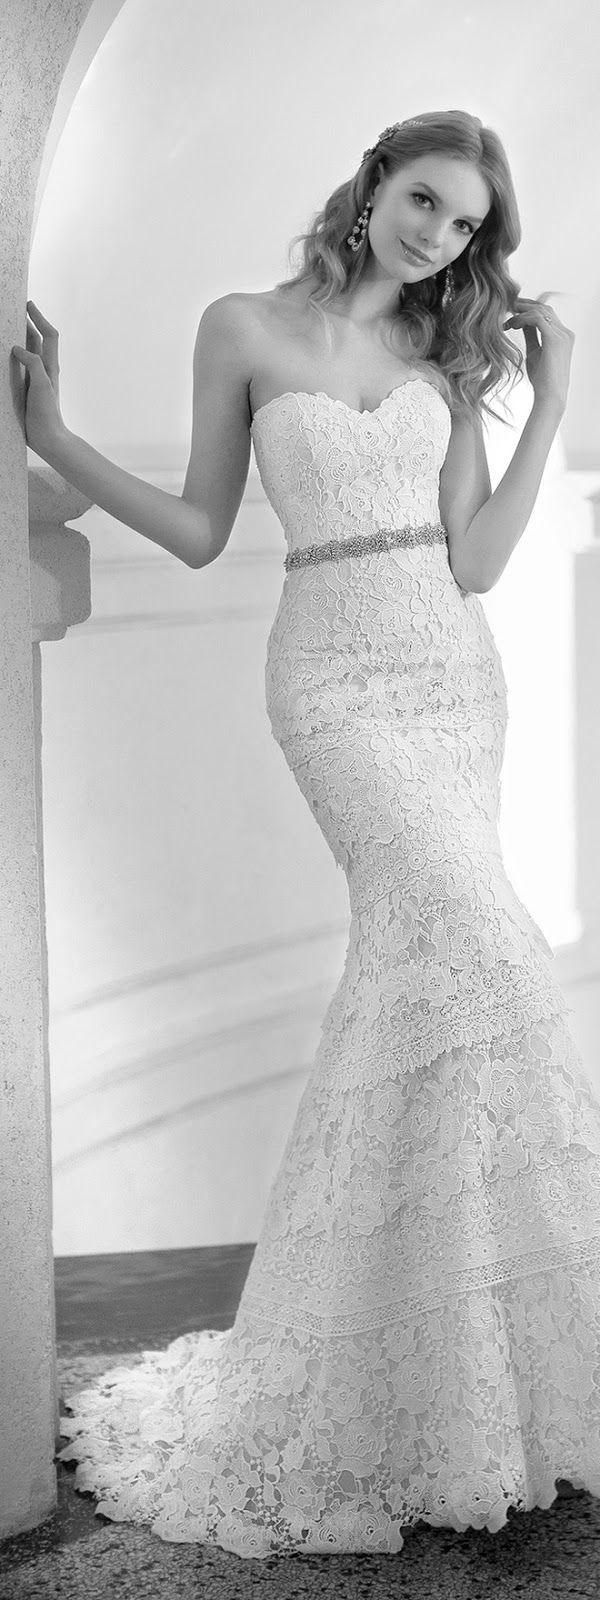 best images about i do on pinterest stella york lace and low